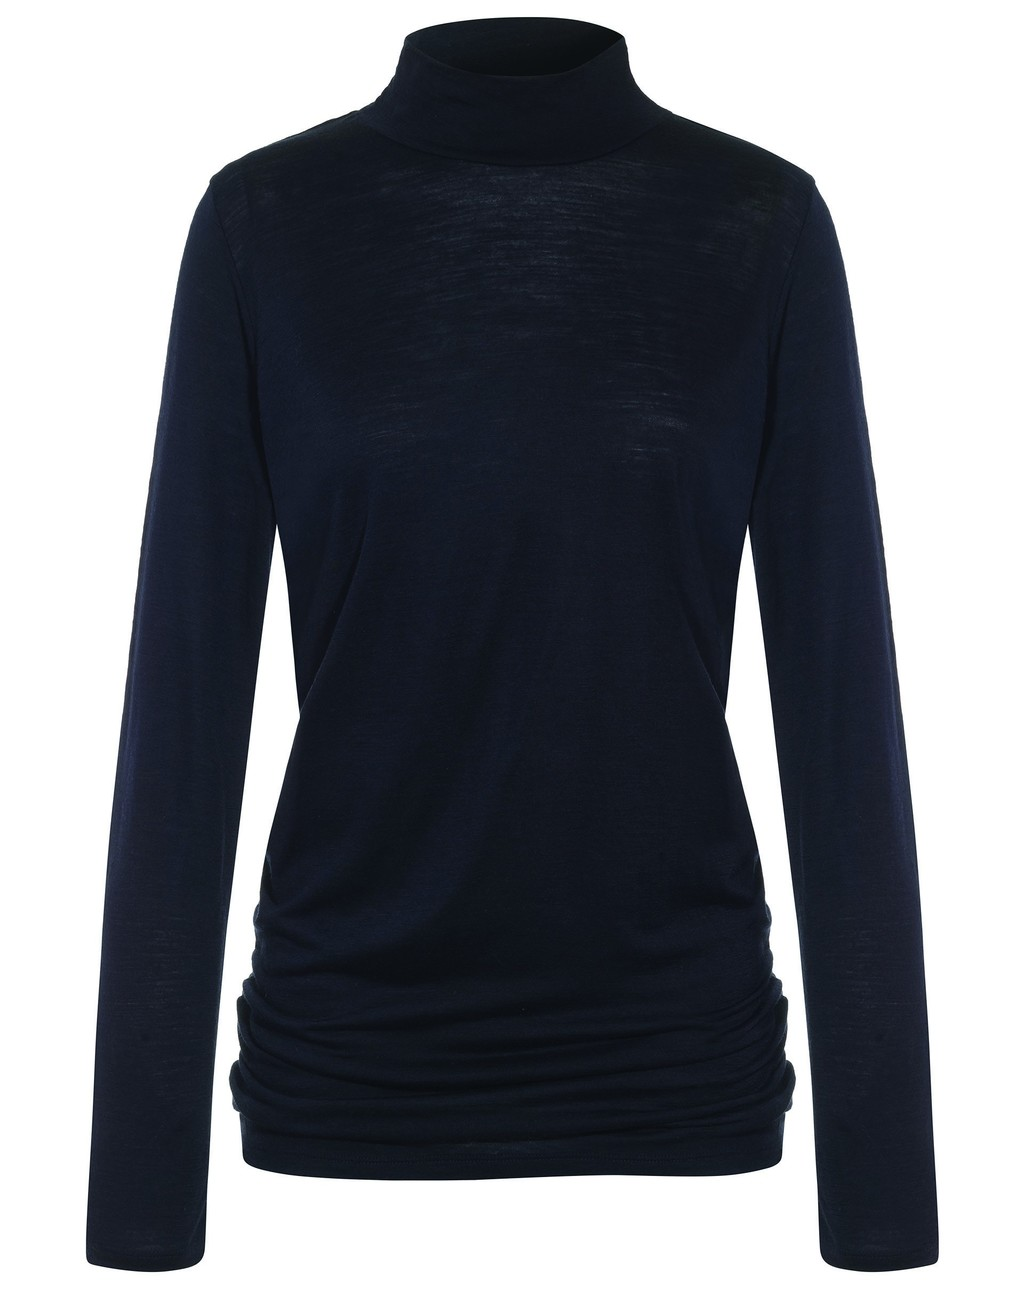 Luxe Polo Neck Top - pattern: plain; neckline: high neck; predominant colour: black; occasions: casual; length: standard; style: top; fibres: wool - 100%; fit: body skimming; sleeve length: long sleeve; sleeve style: standard; pattern type: fabric; texture group: jersey - stretchy/drapey; wardrobe: basic; season: a/w 2016